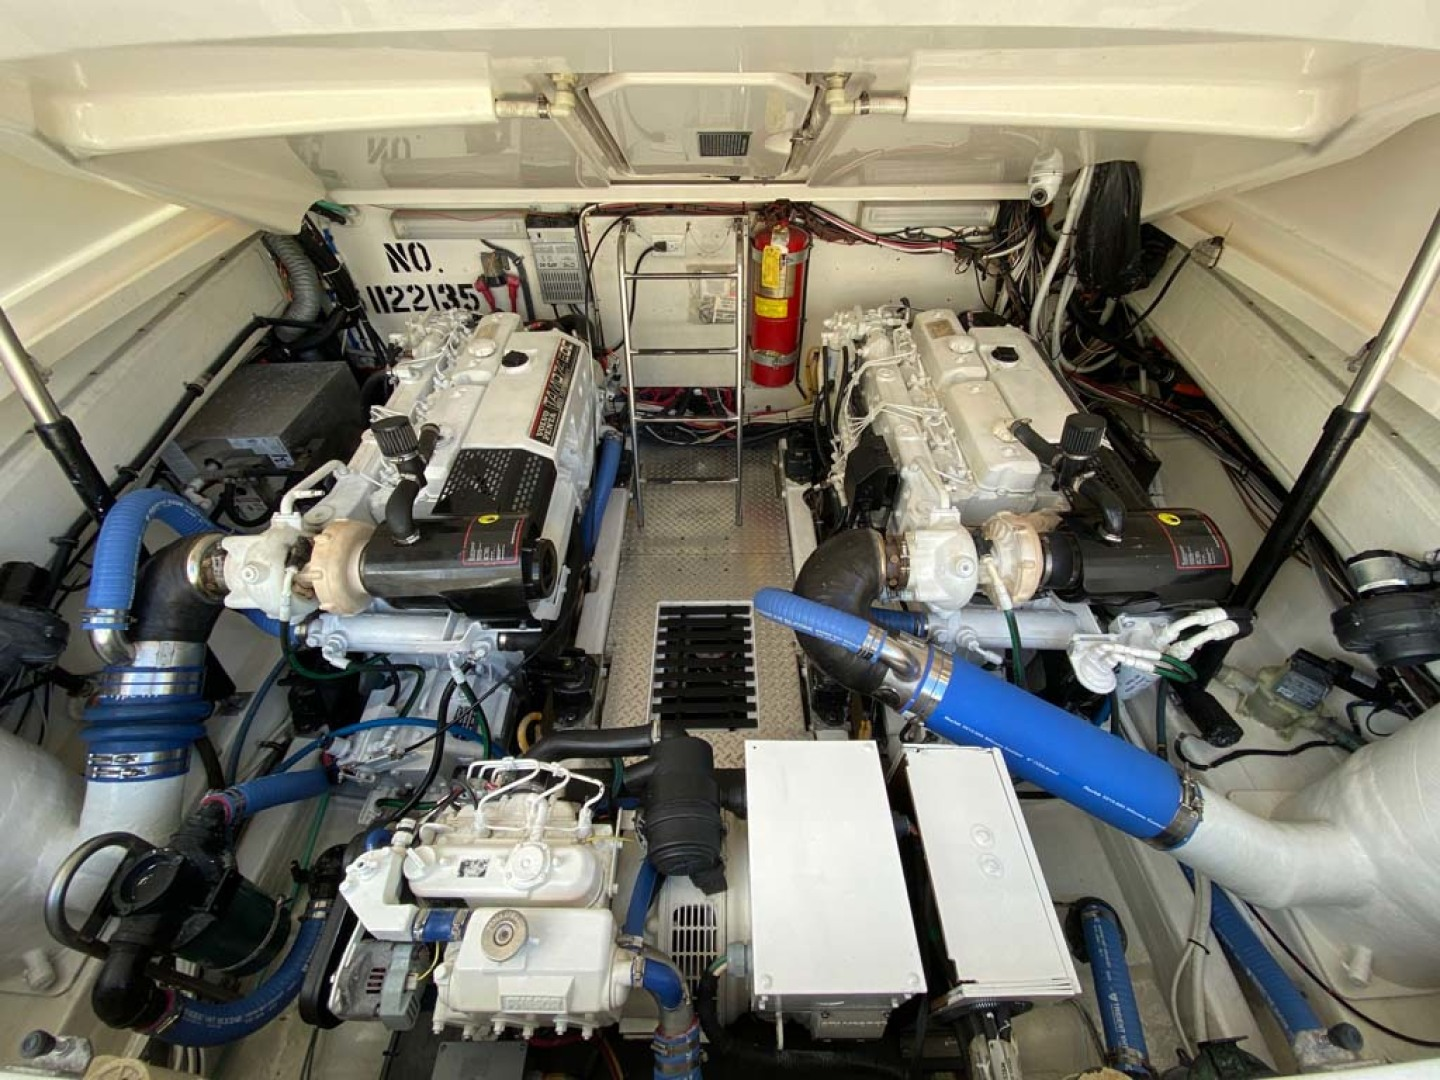 Pursuit-3800 Express 2002-Going Deep Destin-Florida-United States-Engine Compartment-1276716 | Thumbnail